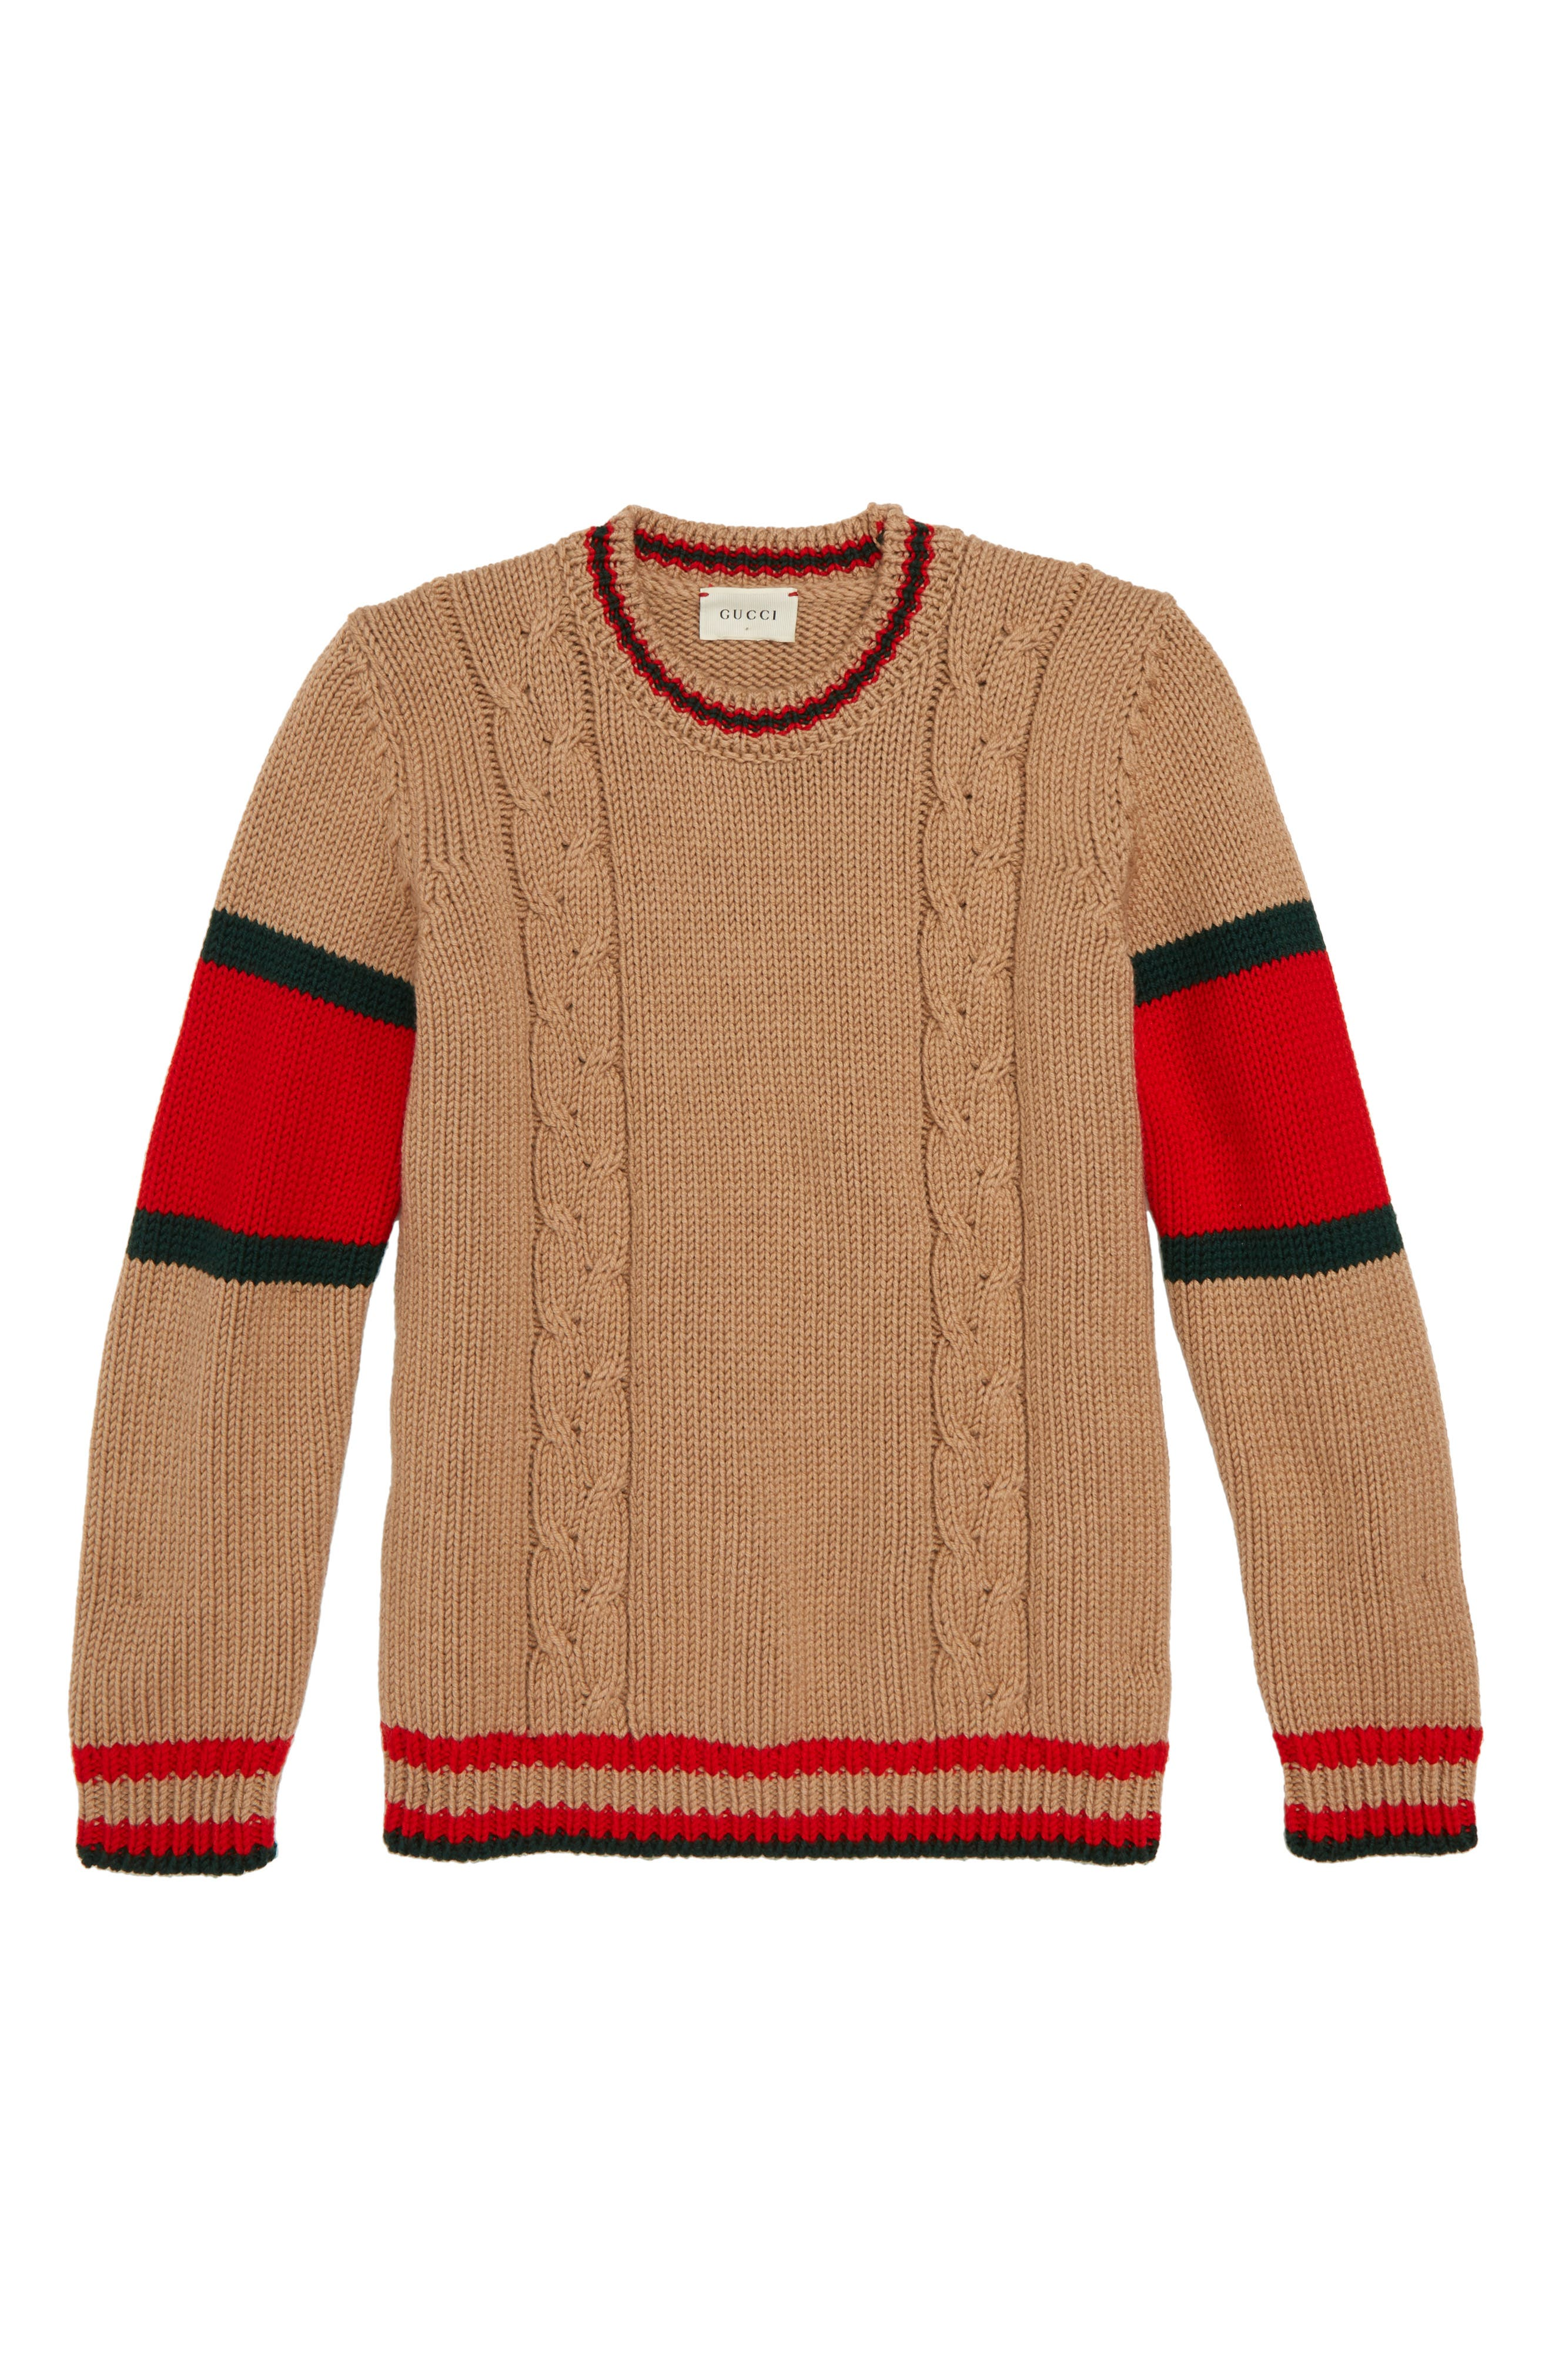 Crewneck Wool Sweater,                             Main thumbnail 1, color,                             CAMEL/ GREEN/ RED